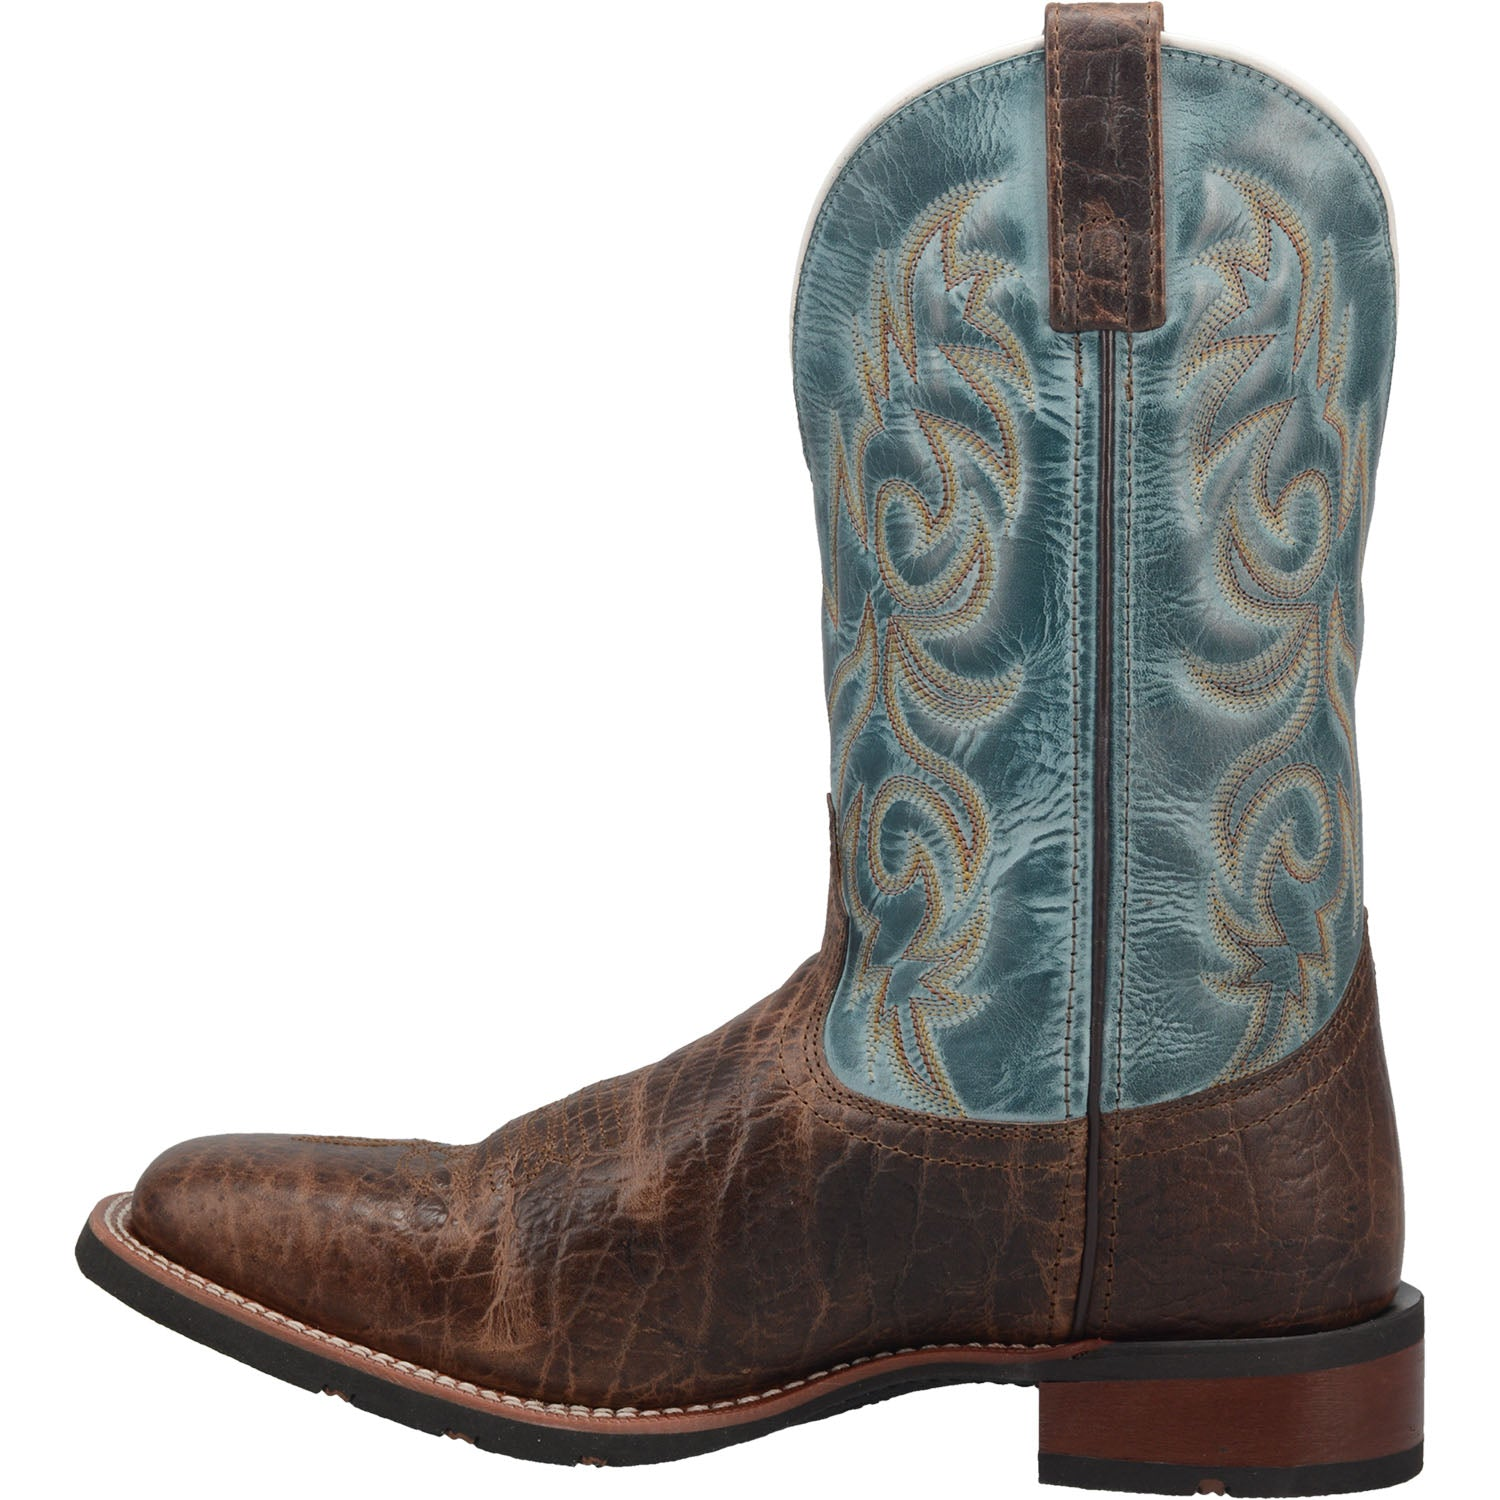 BISBEE LEATHER BOOT 28111096578090